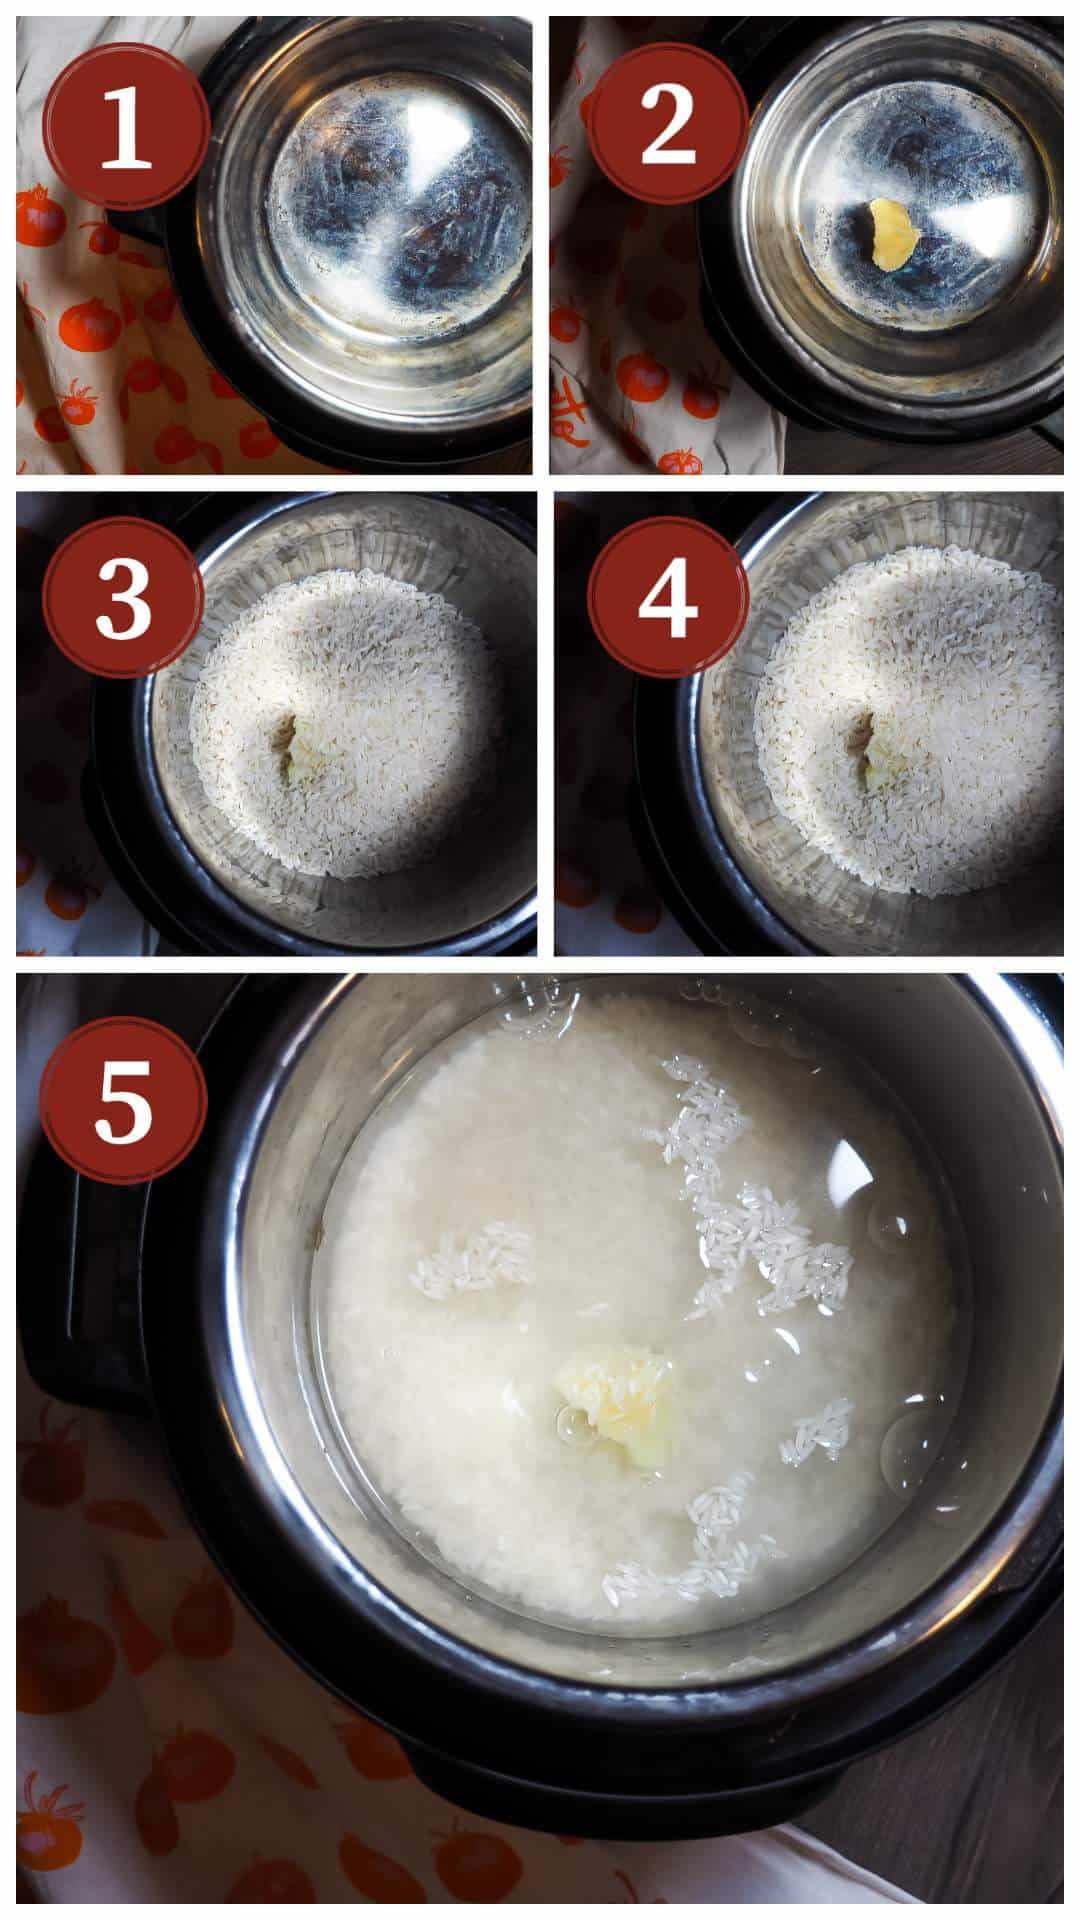 A collage of pictures of the process of cooking white rice in an instant pot. Steps 1 - 5.